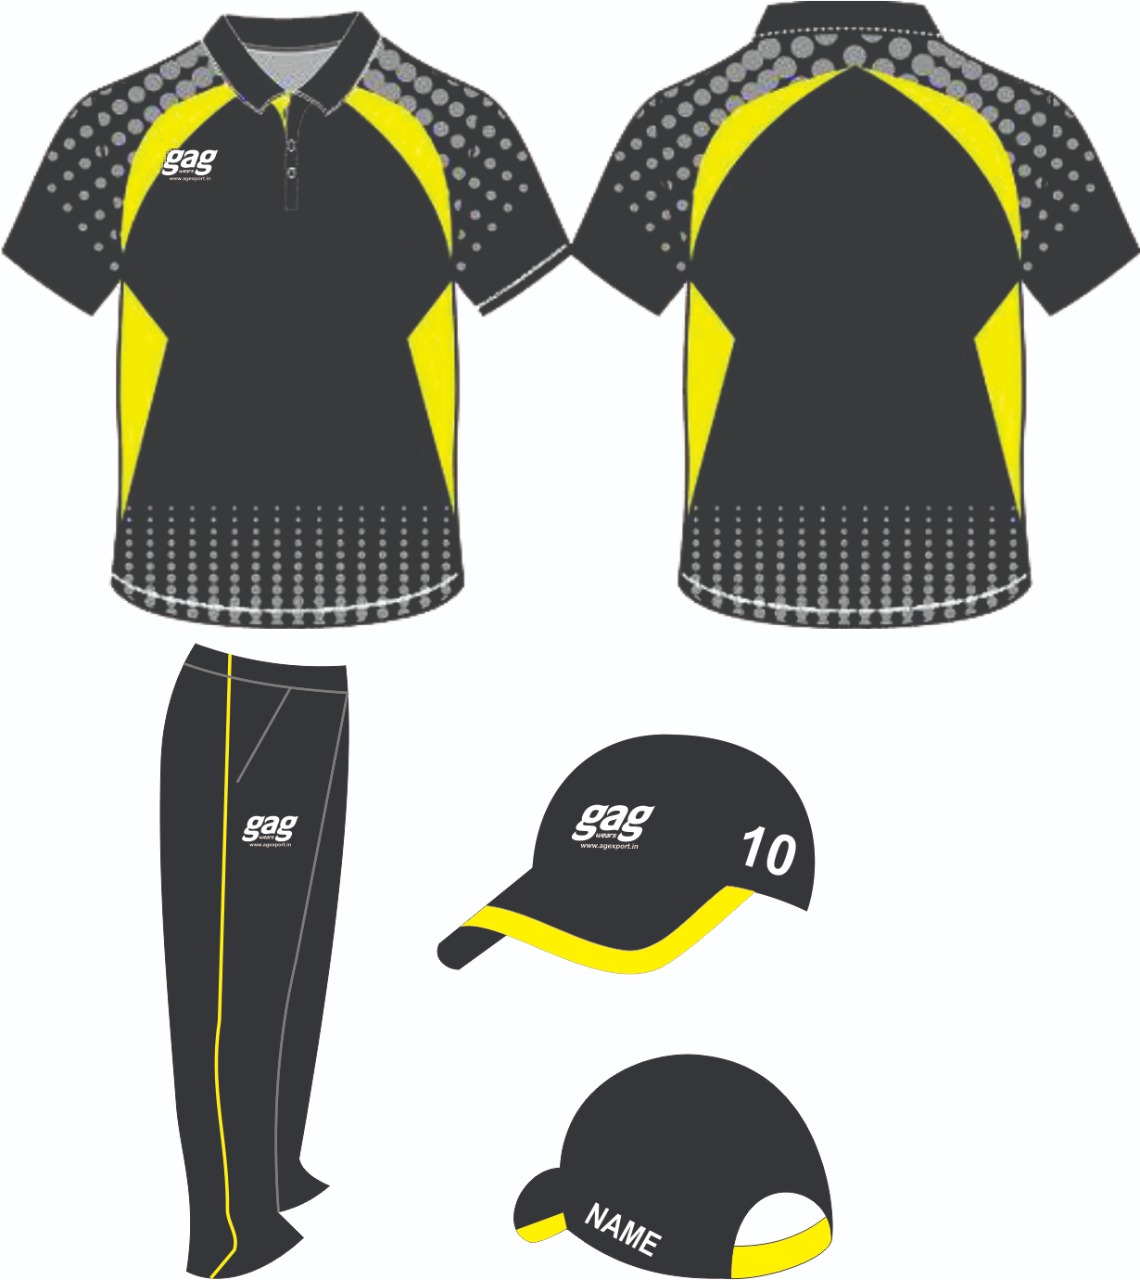 Cricket Uniform Manufacturers and Exporters in Delhi